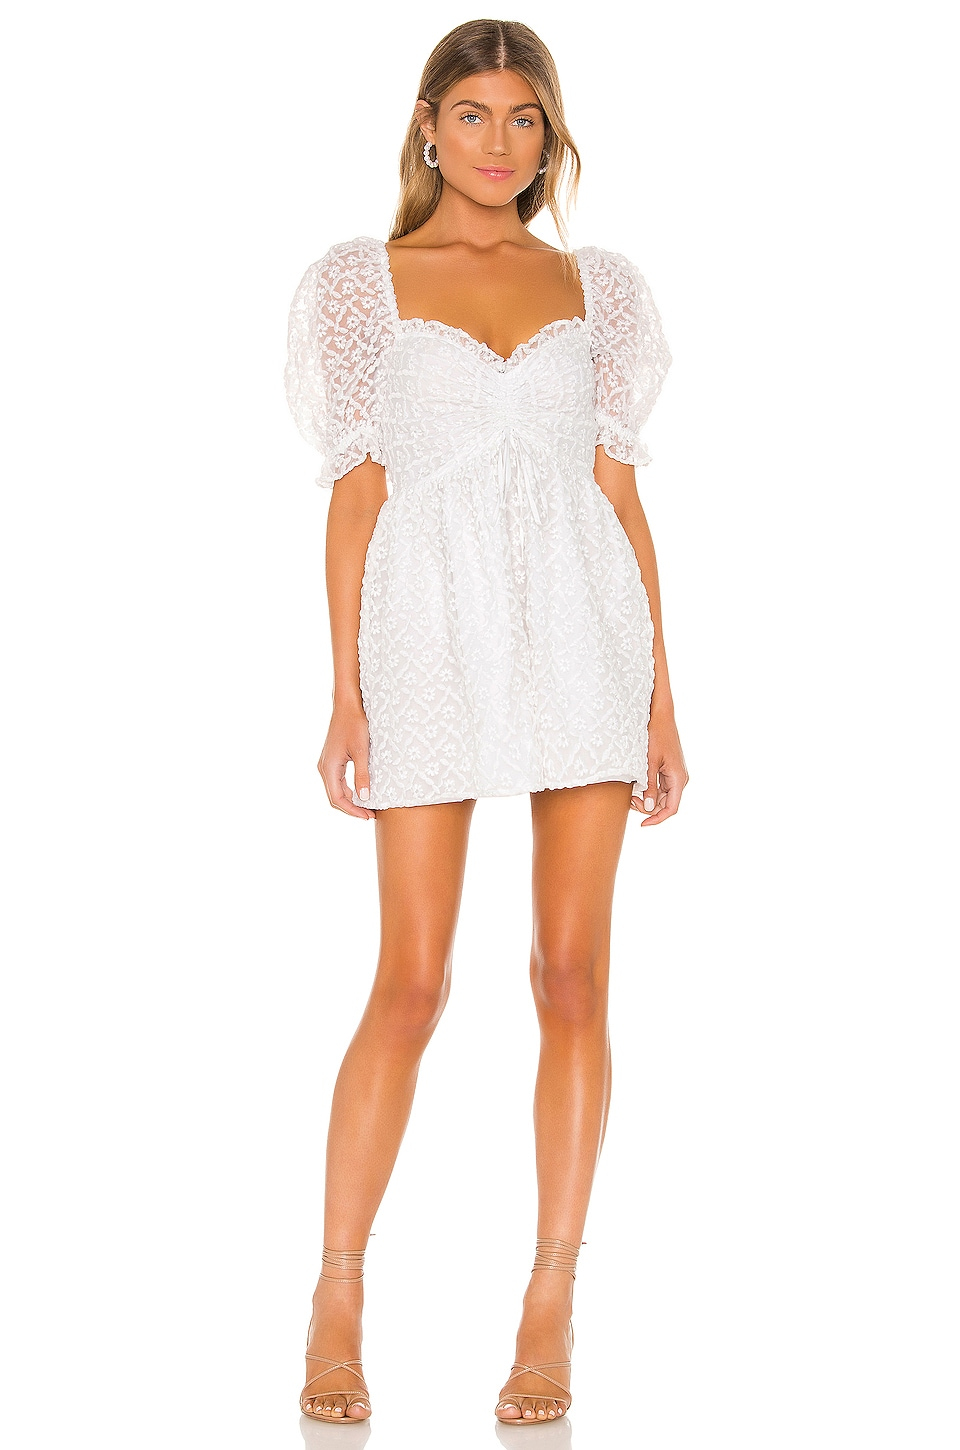 MAJORELLE Nicoli Dress in White